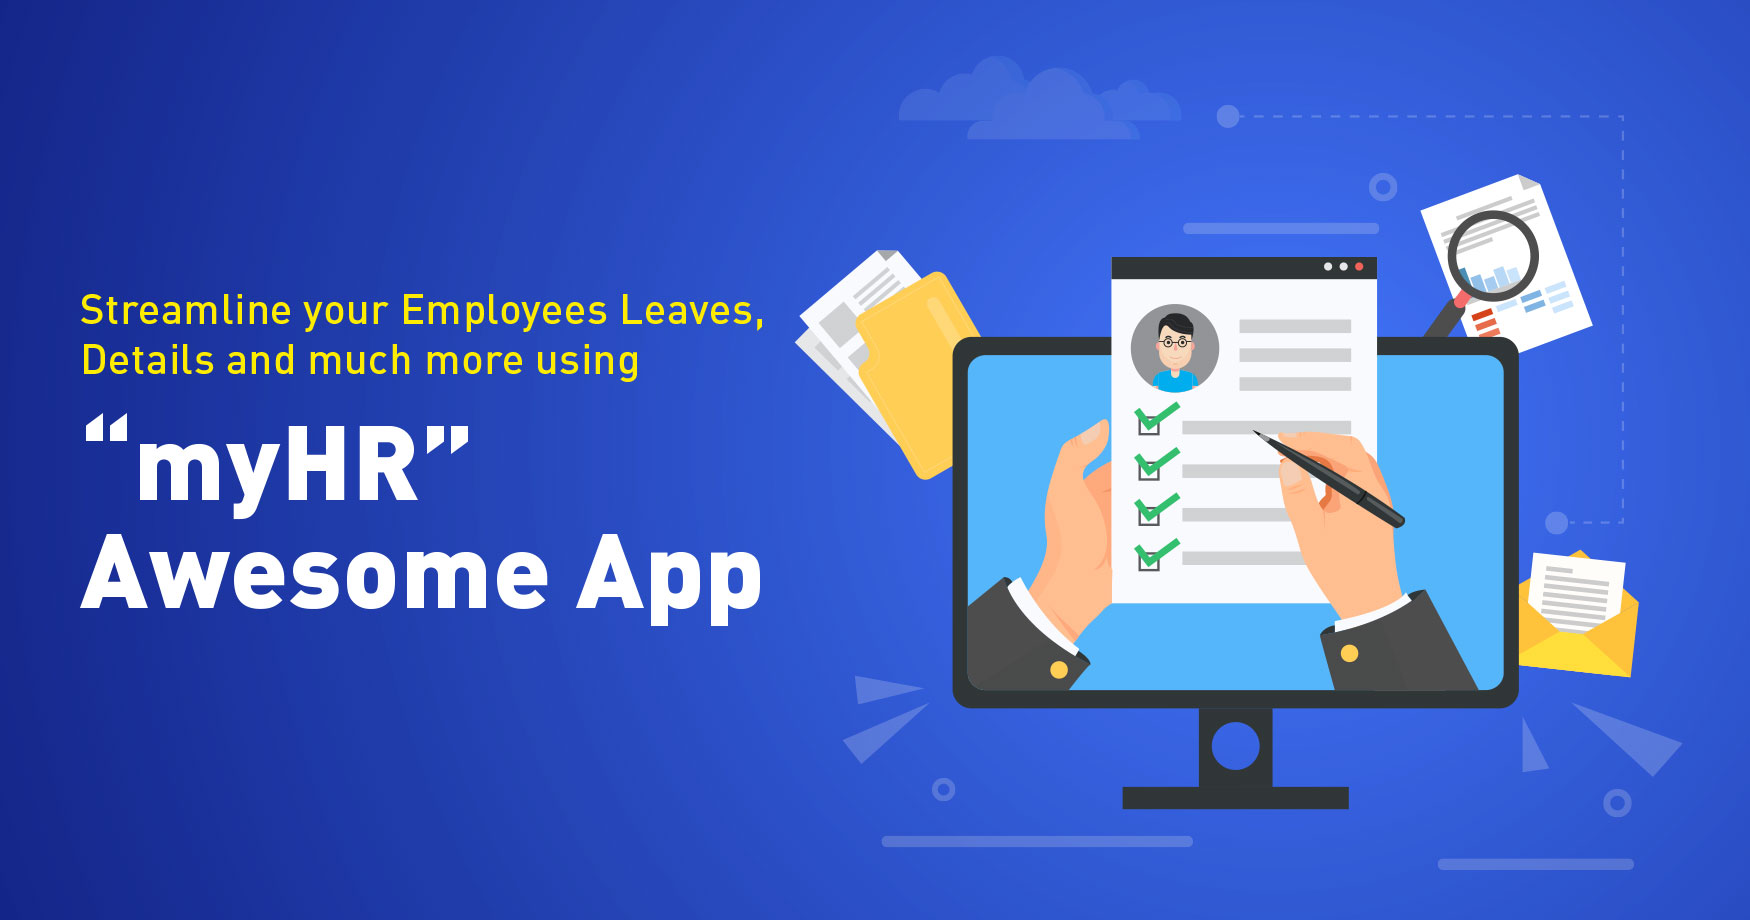 Streamline your Employees Leaves, Details and much more using